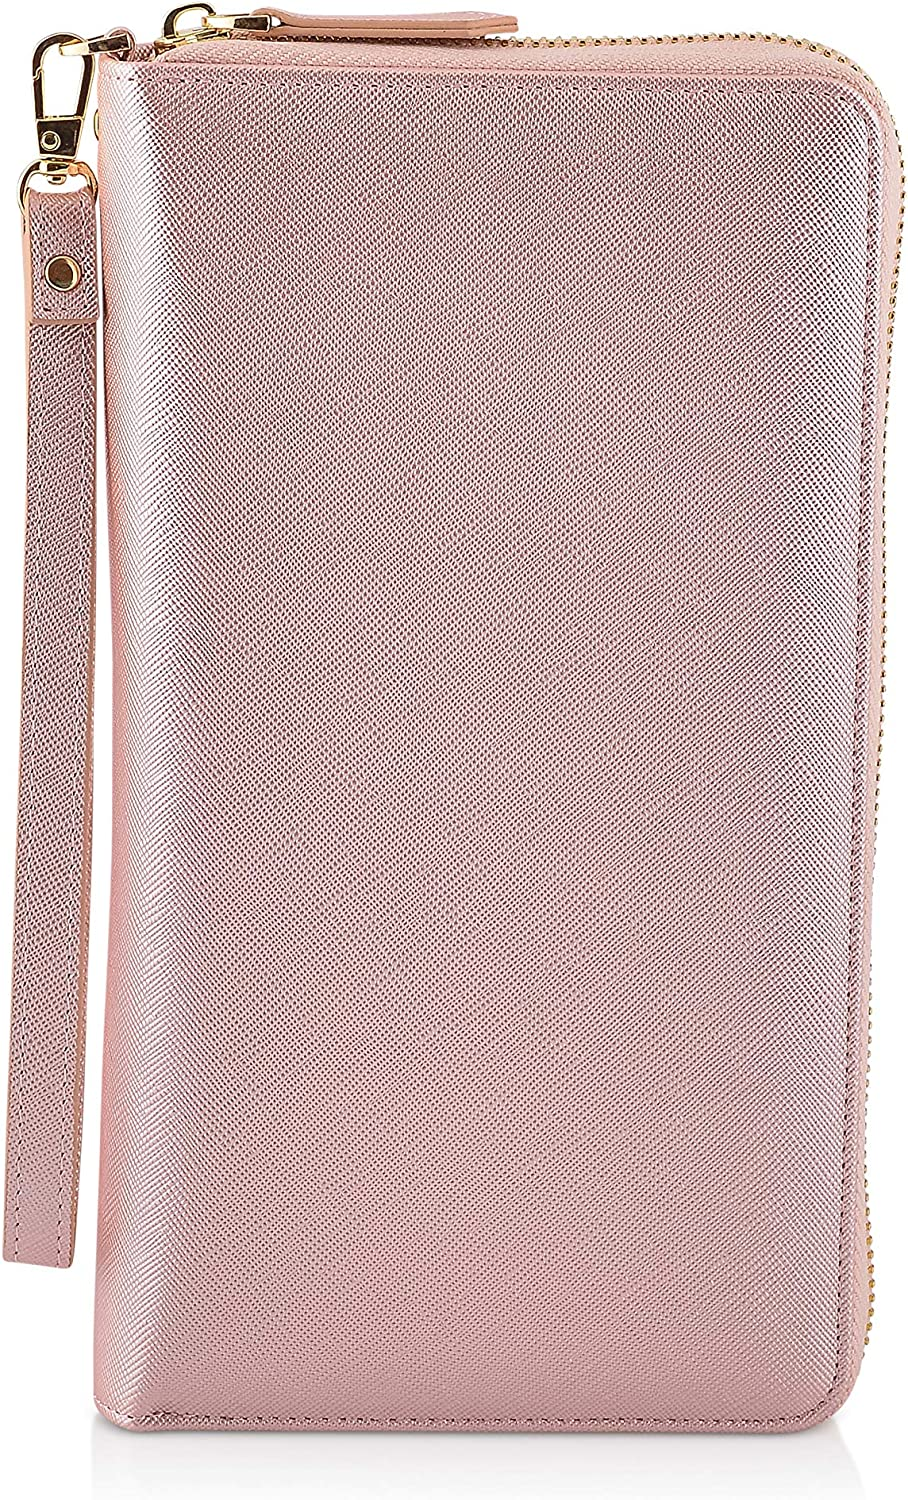 EXOS New Shipping Quantity limited Free Women's Large Capacity Clutch w Travel Removab Wallet